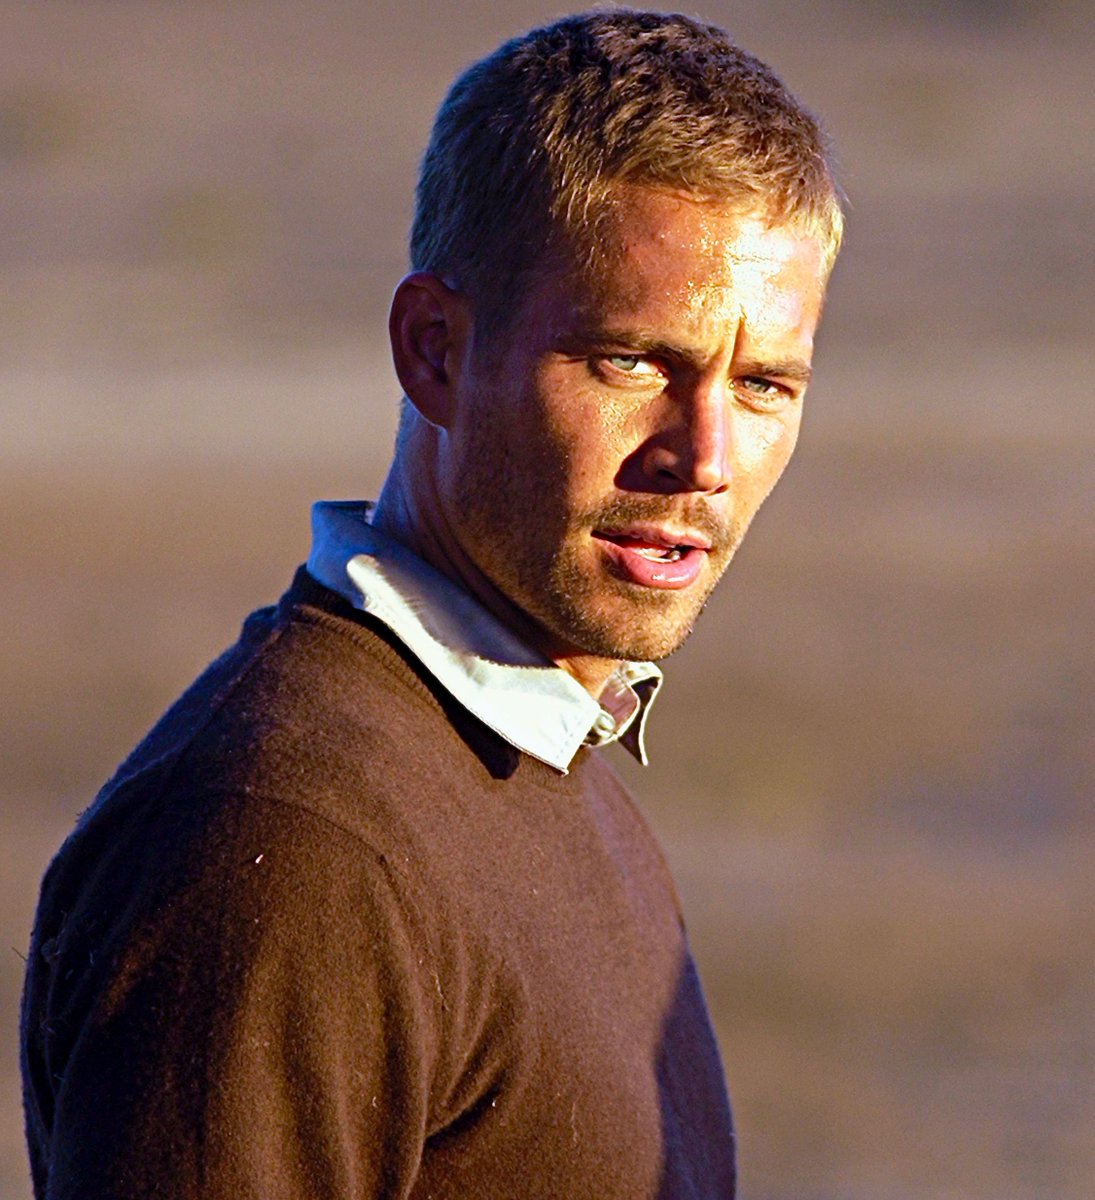 Sony Movie Channel On Twitter We Re Only On The Earth For A Short Period Of Time Remembering Paul Walker 1973 2013 Who Made His Time Here Count See Him In The Death And